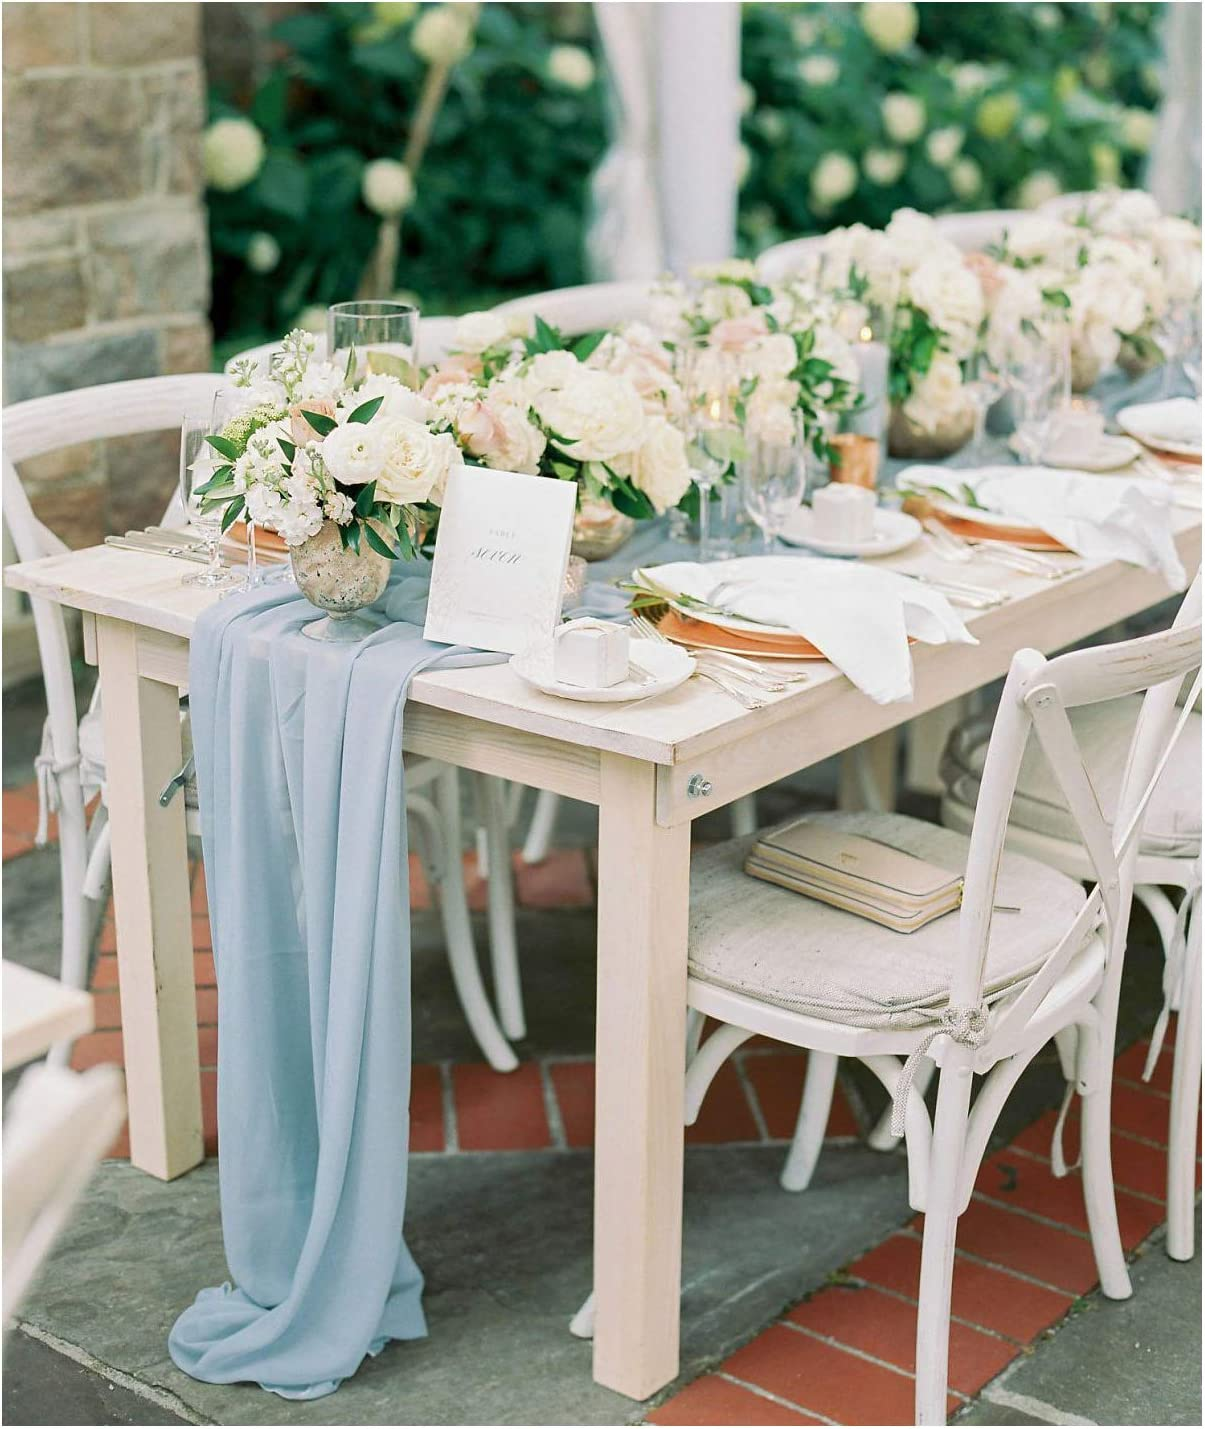 SP Boutique Blue Sheer Table Runner 2 Packs 10FT Chiffon Fabric Runners for Wedding Arch Outdoor Rustic Events Dessert Table Decor